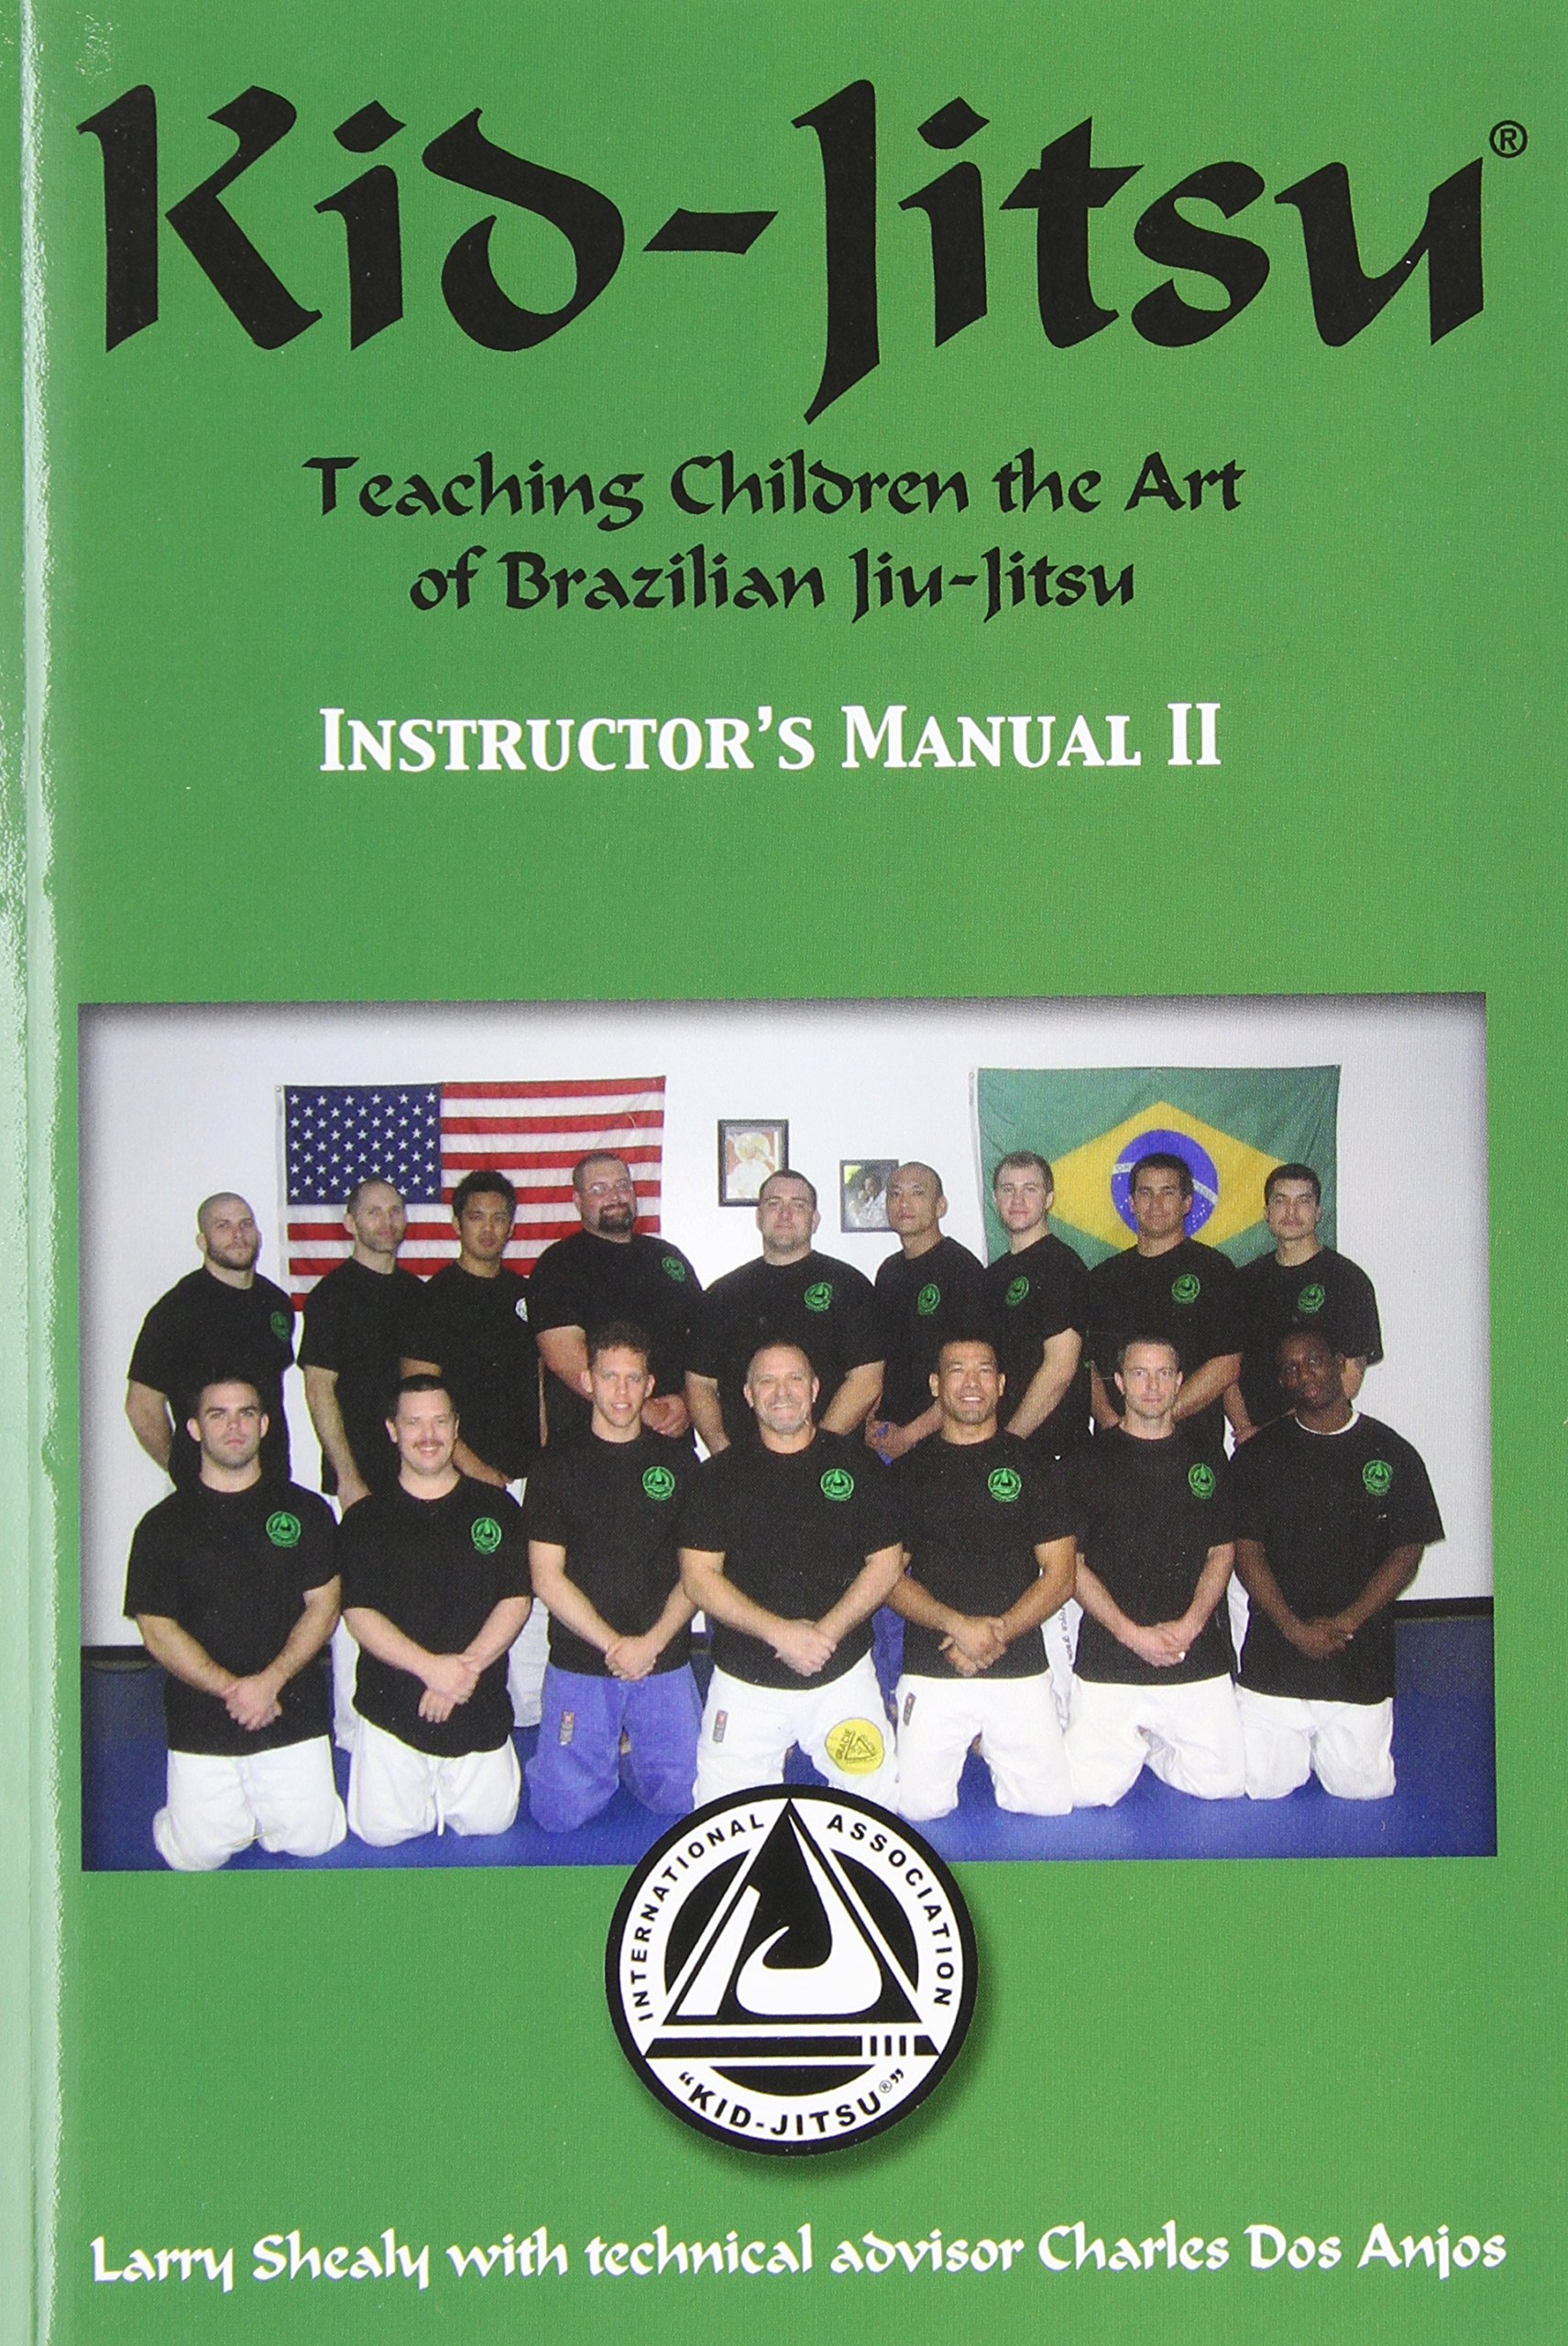 Official gracie instructor manual array kid jitsu r teaching children the art of brazilian jiu jitsu rh fandeluxe Images